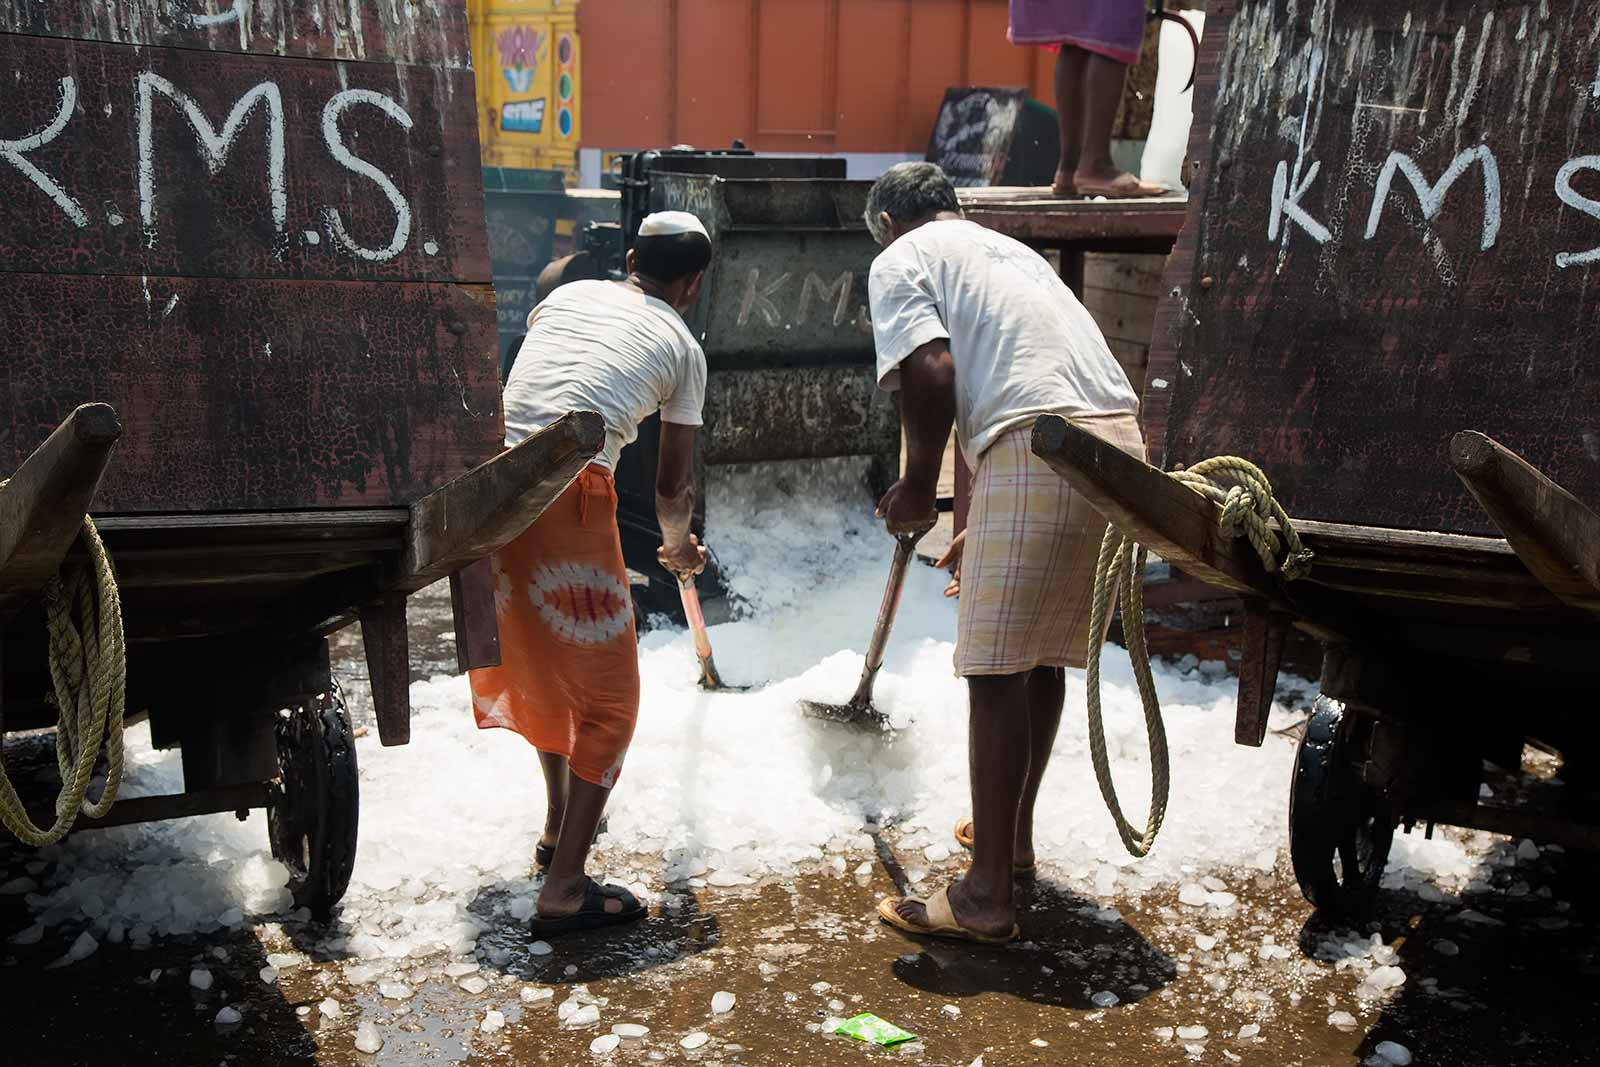 These men at Sassoon Dock are filling up trailers with crushed ice, which are then pulled to the boats and packed into the stowage for the next trip out to sea.